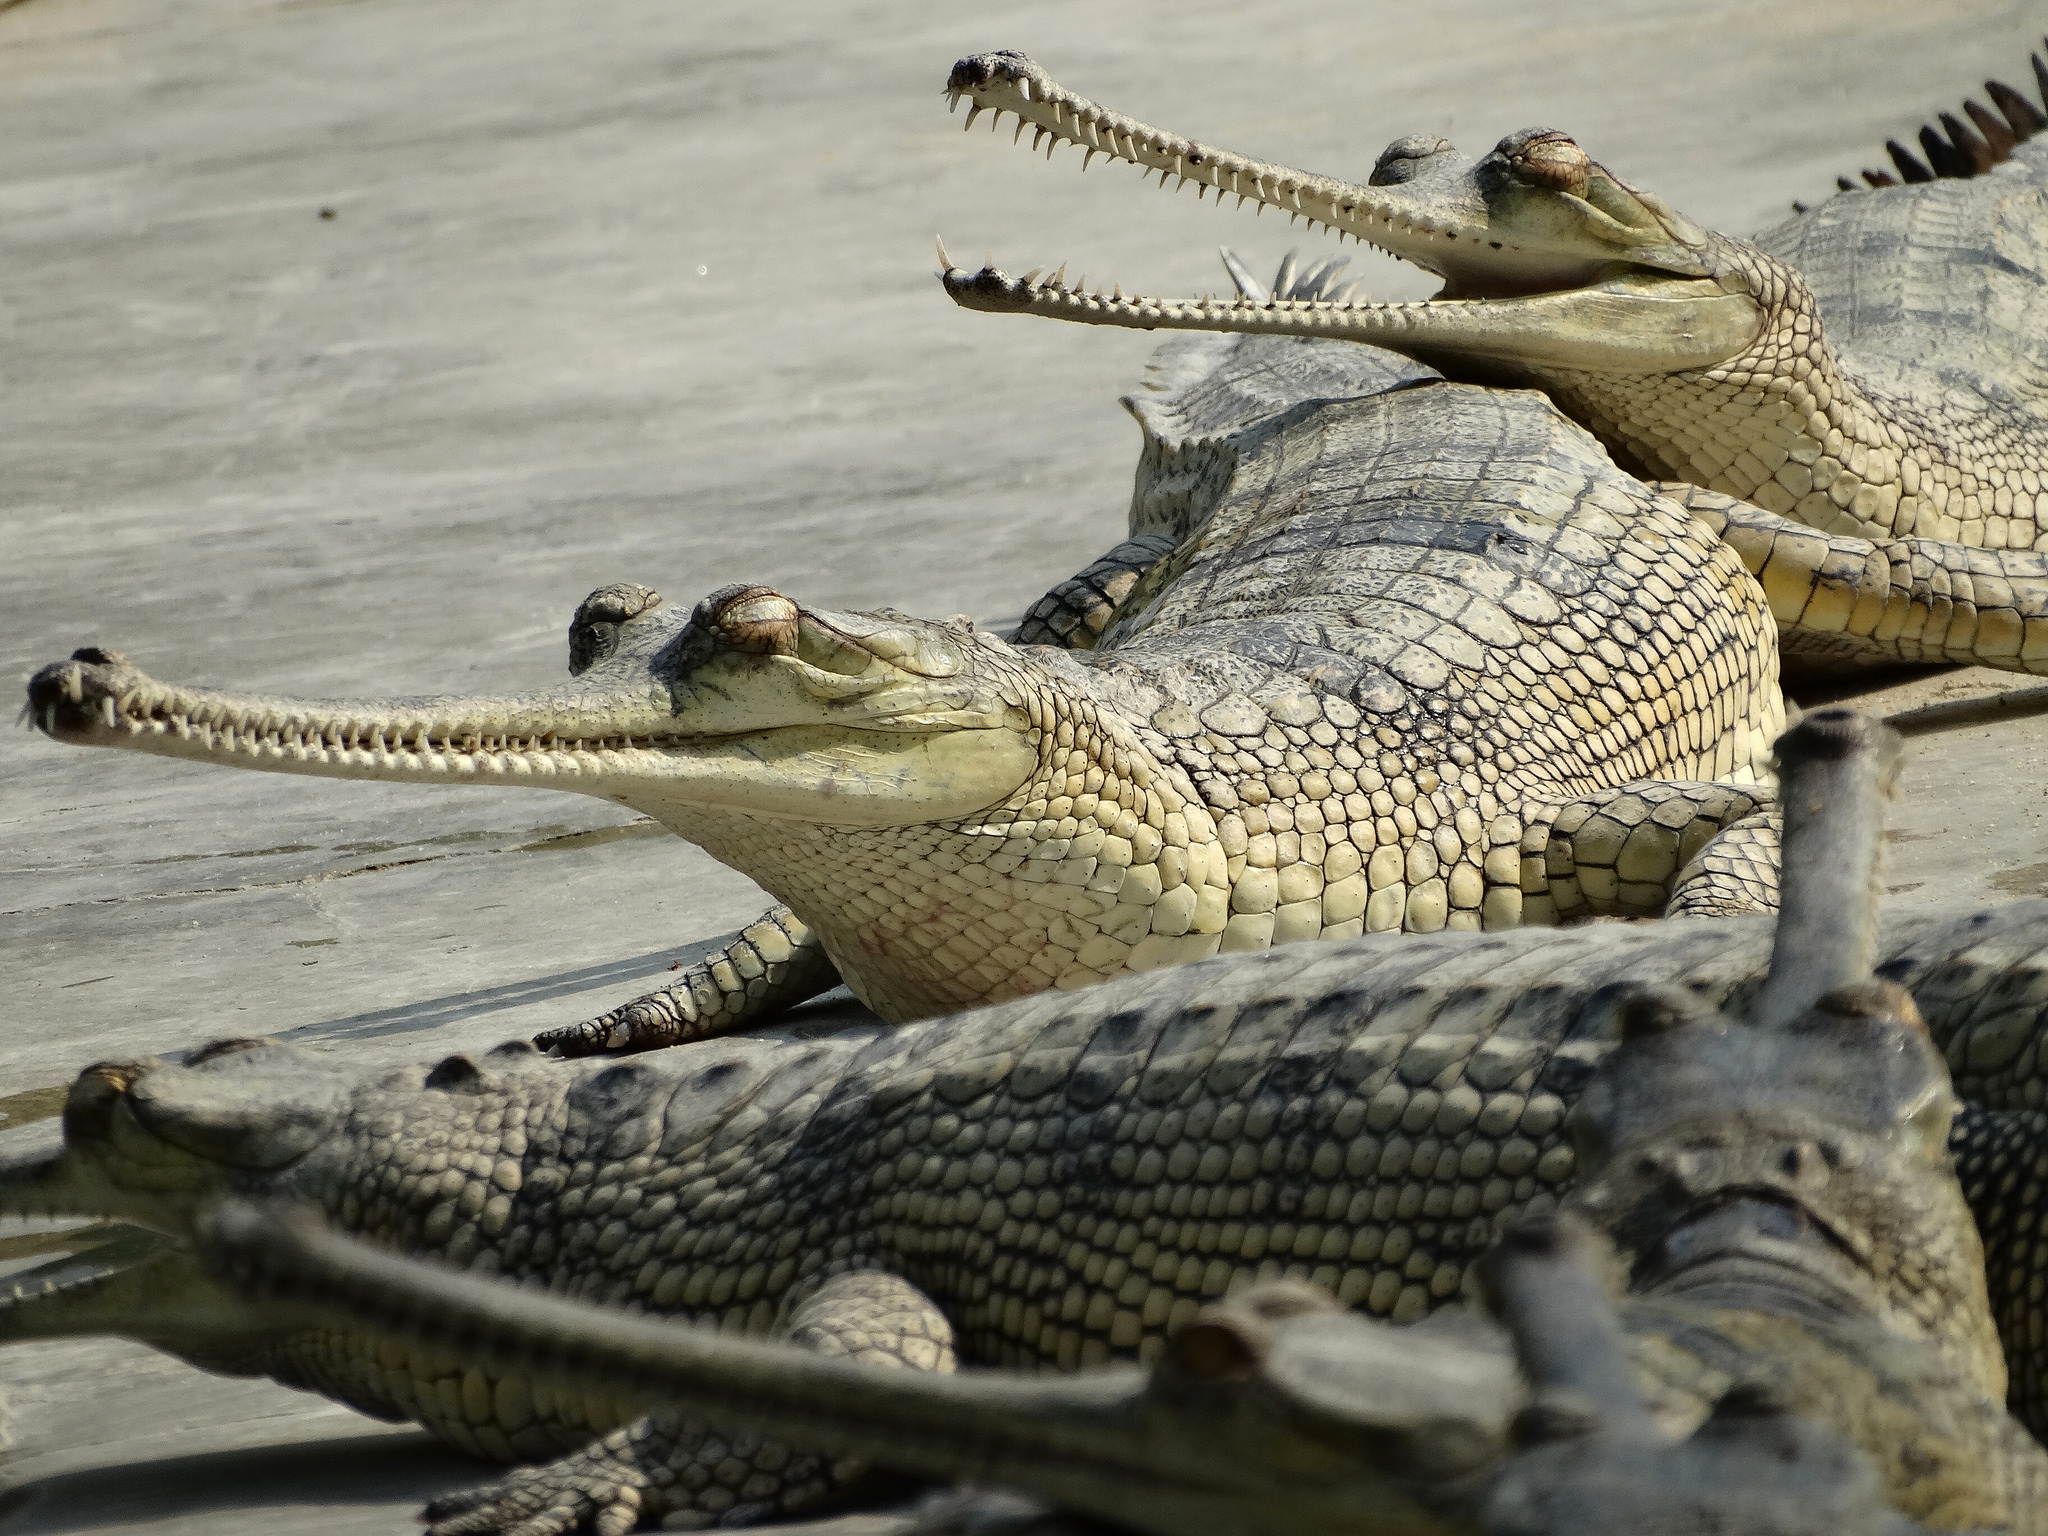 Scientists deploy drones to count endangered crocodiles in Nepal's Bardia